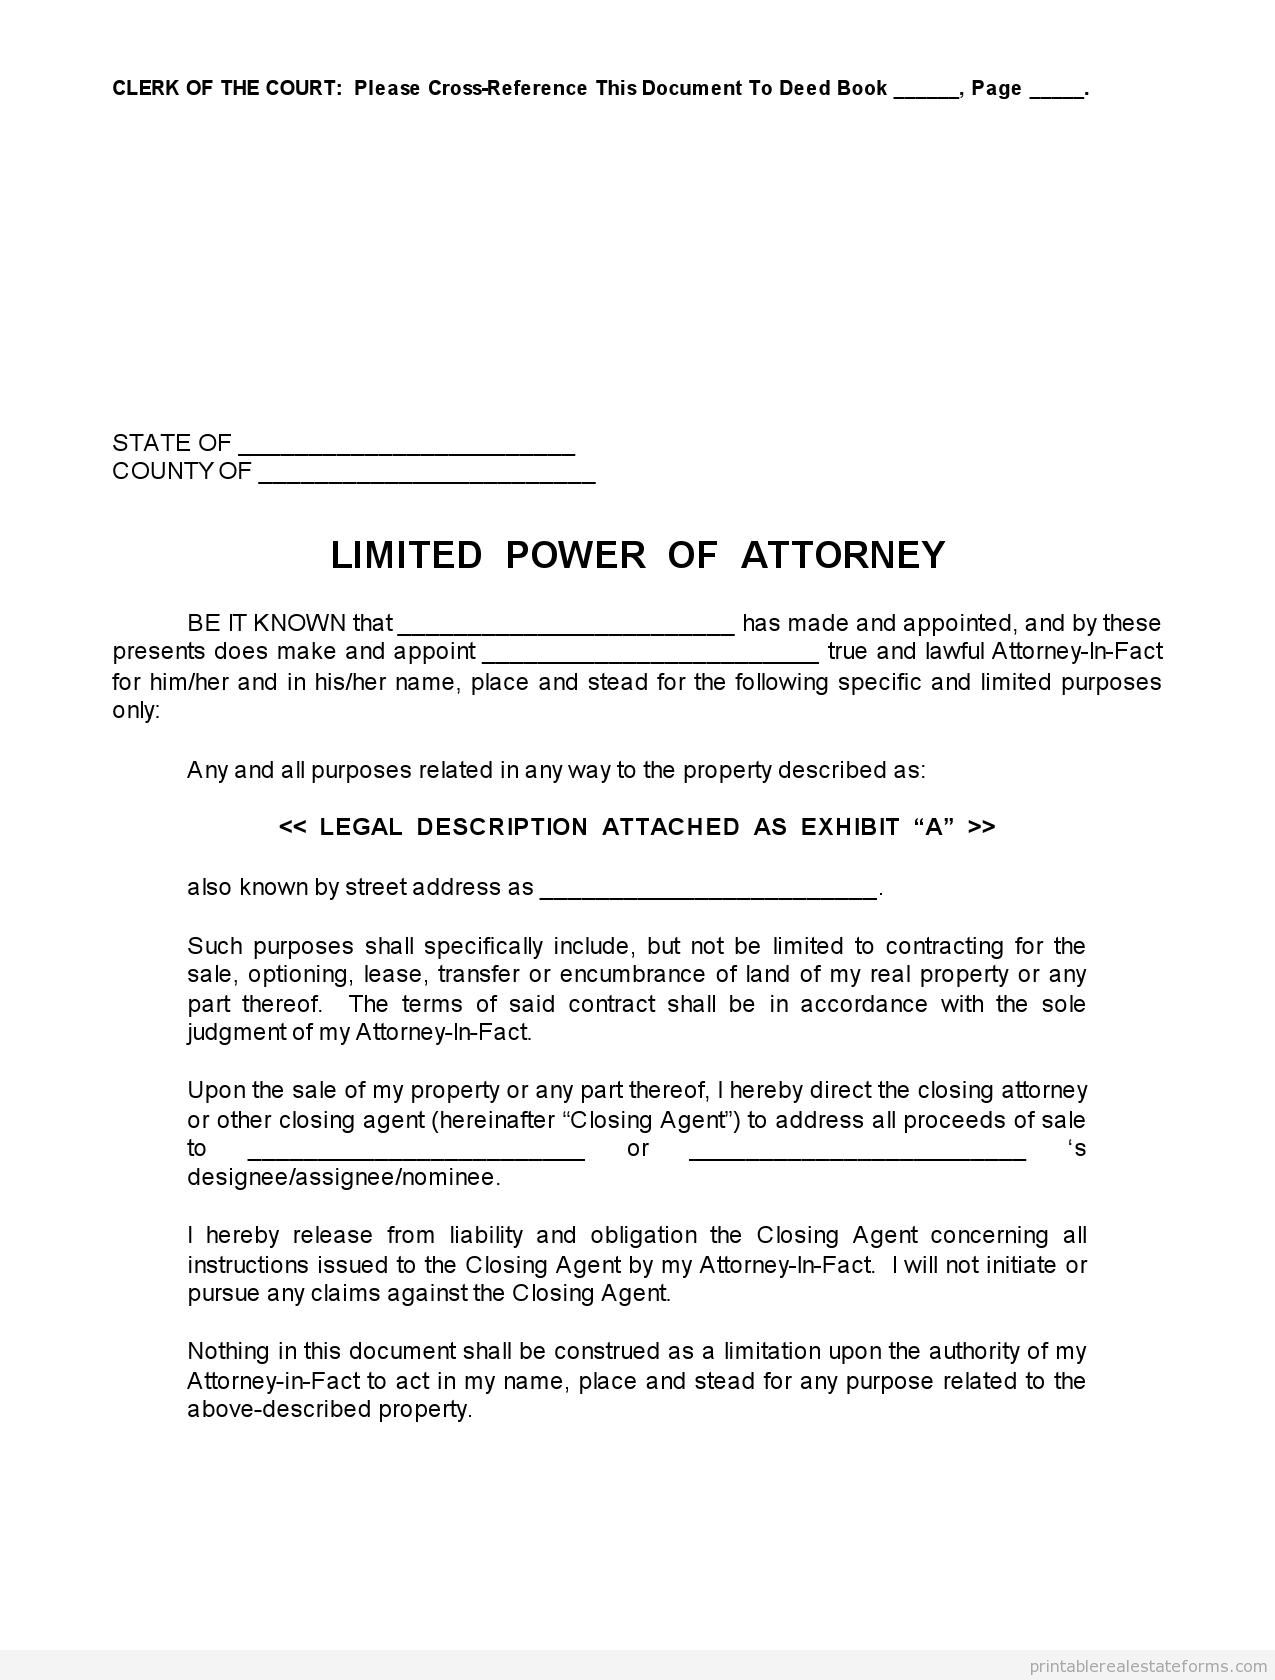 Free Printable Limited Power Of Attorney Forms Sample